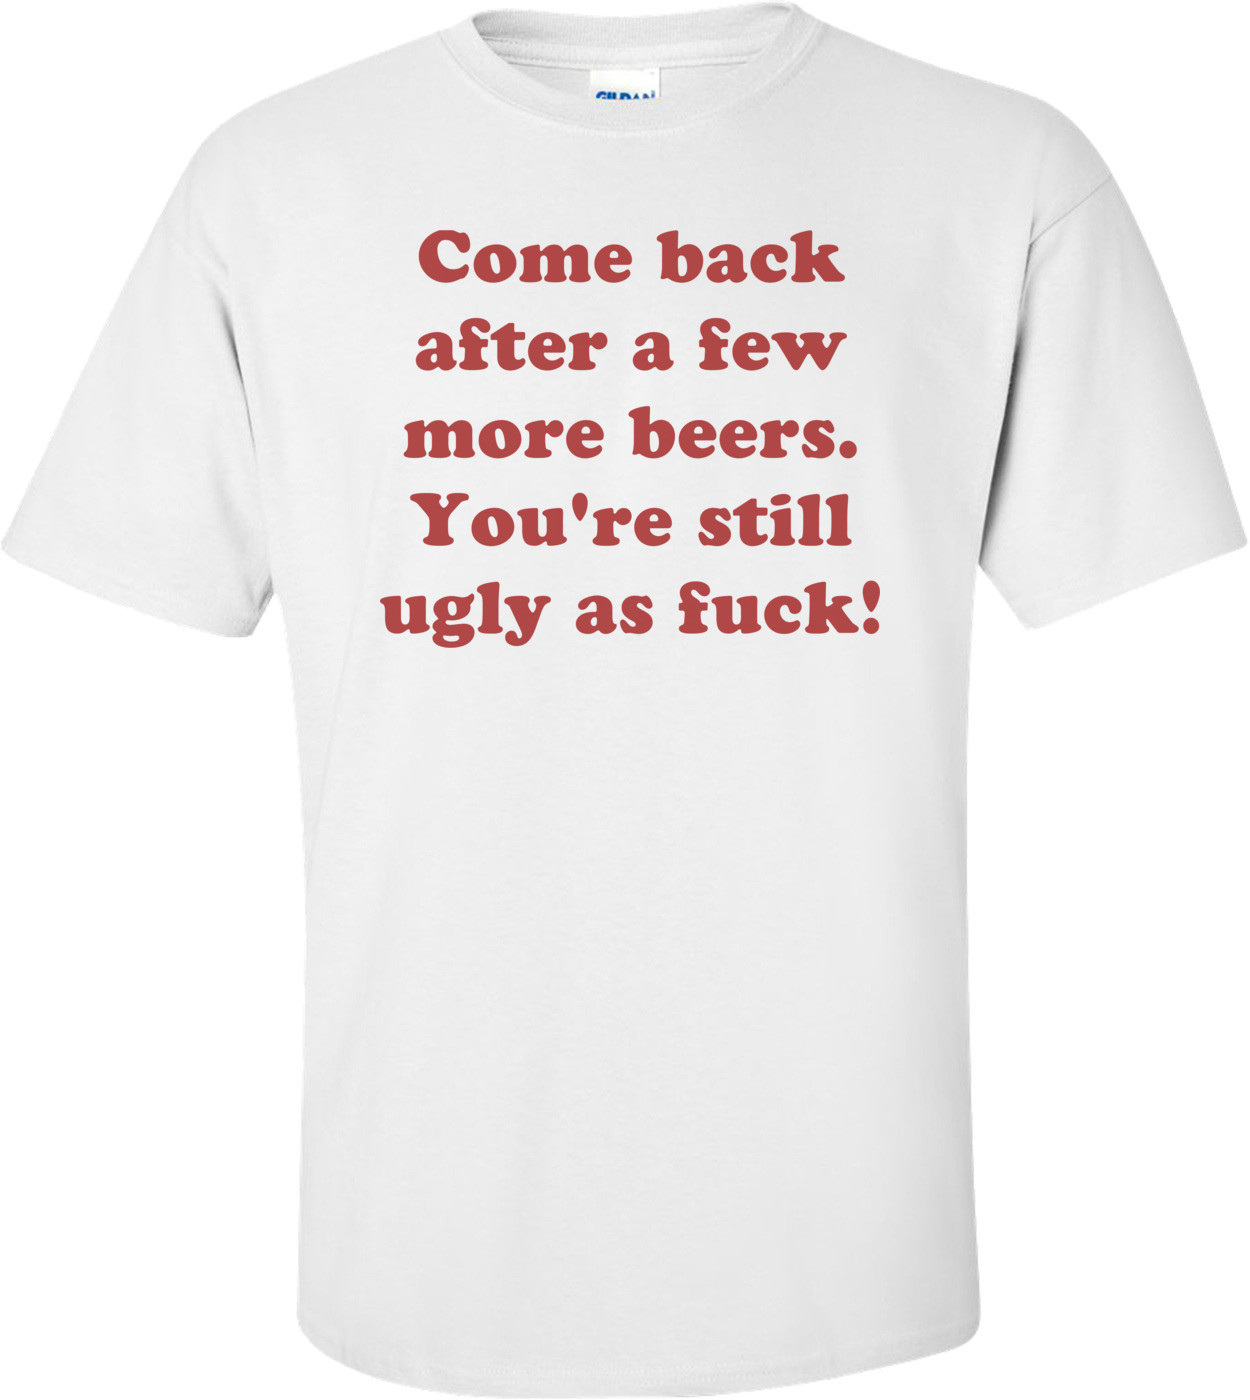 Come back after a few more beers. You're still ugly as fuck! Shirt